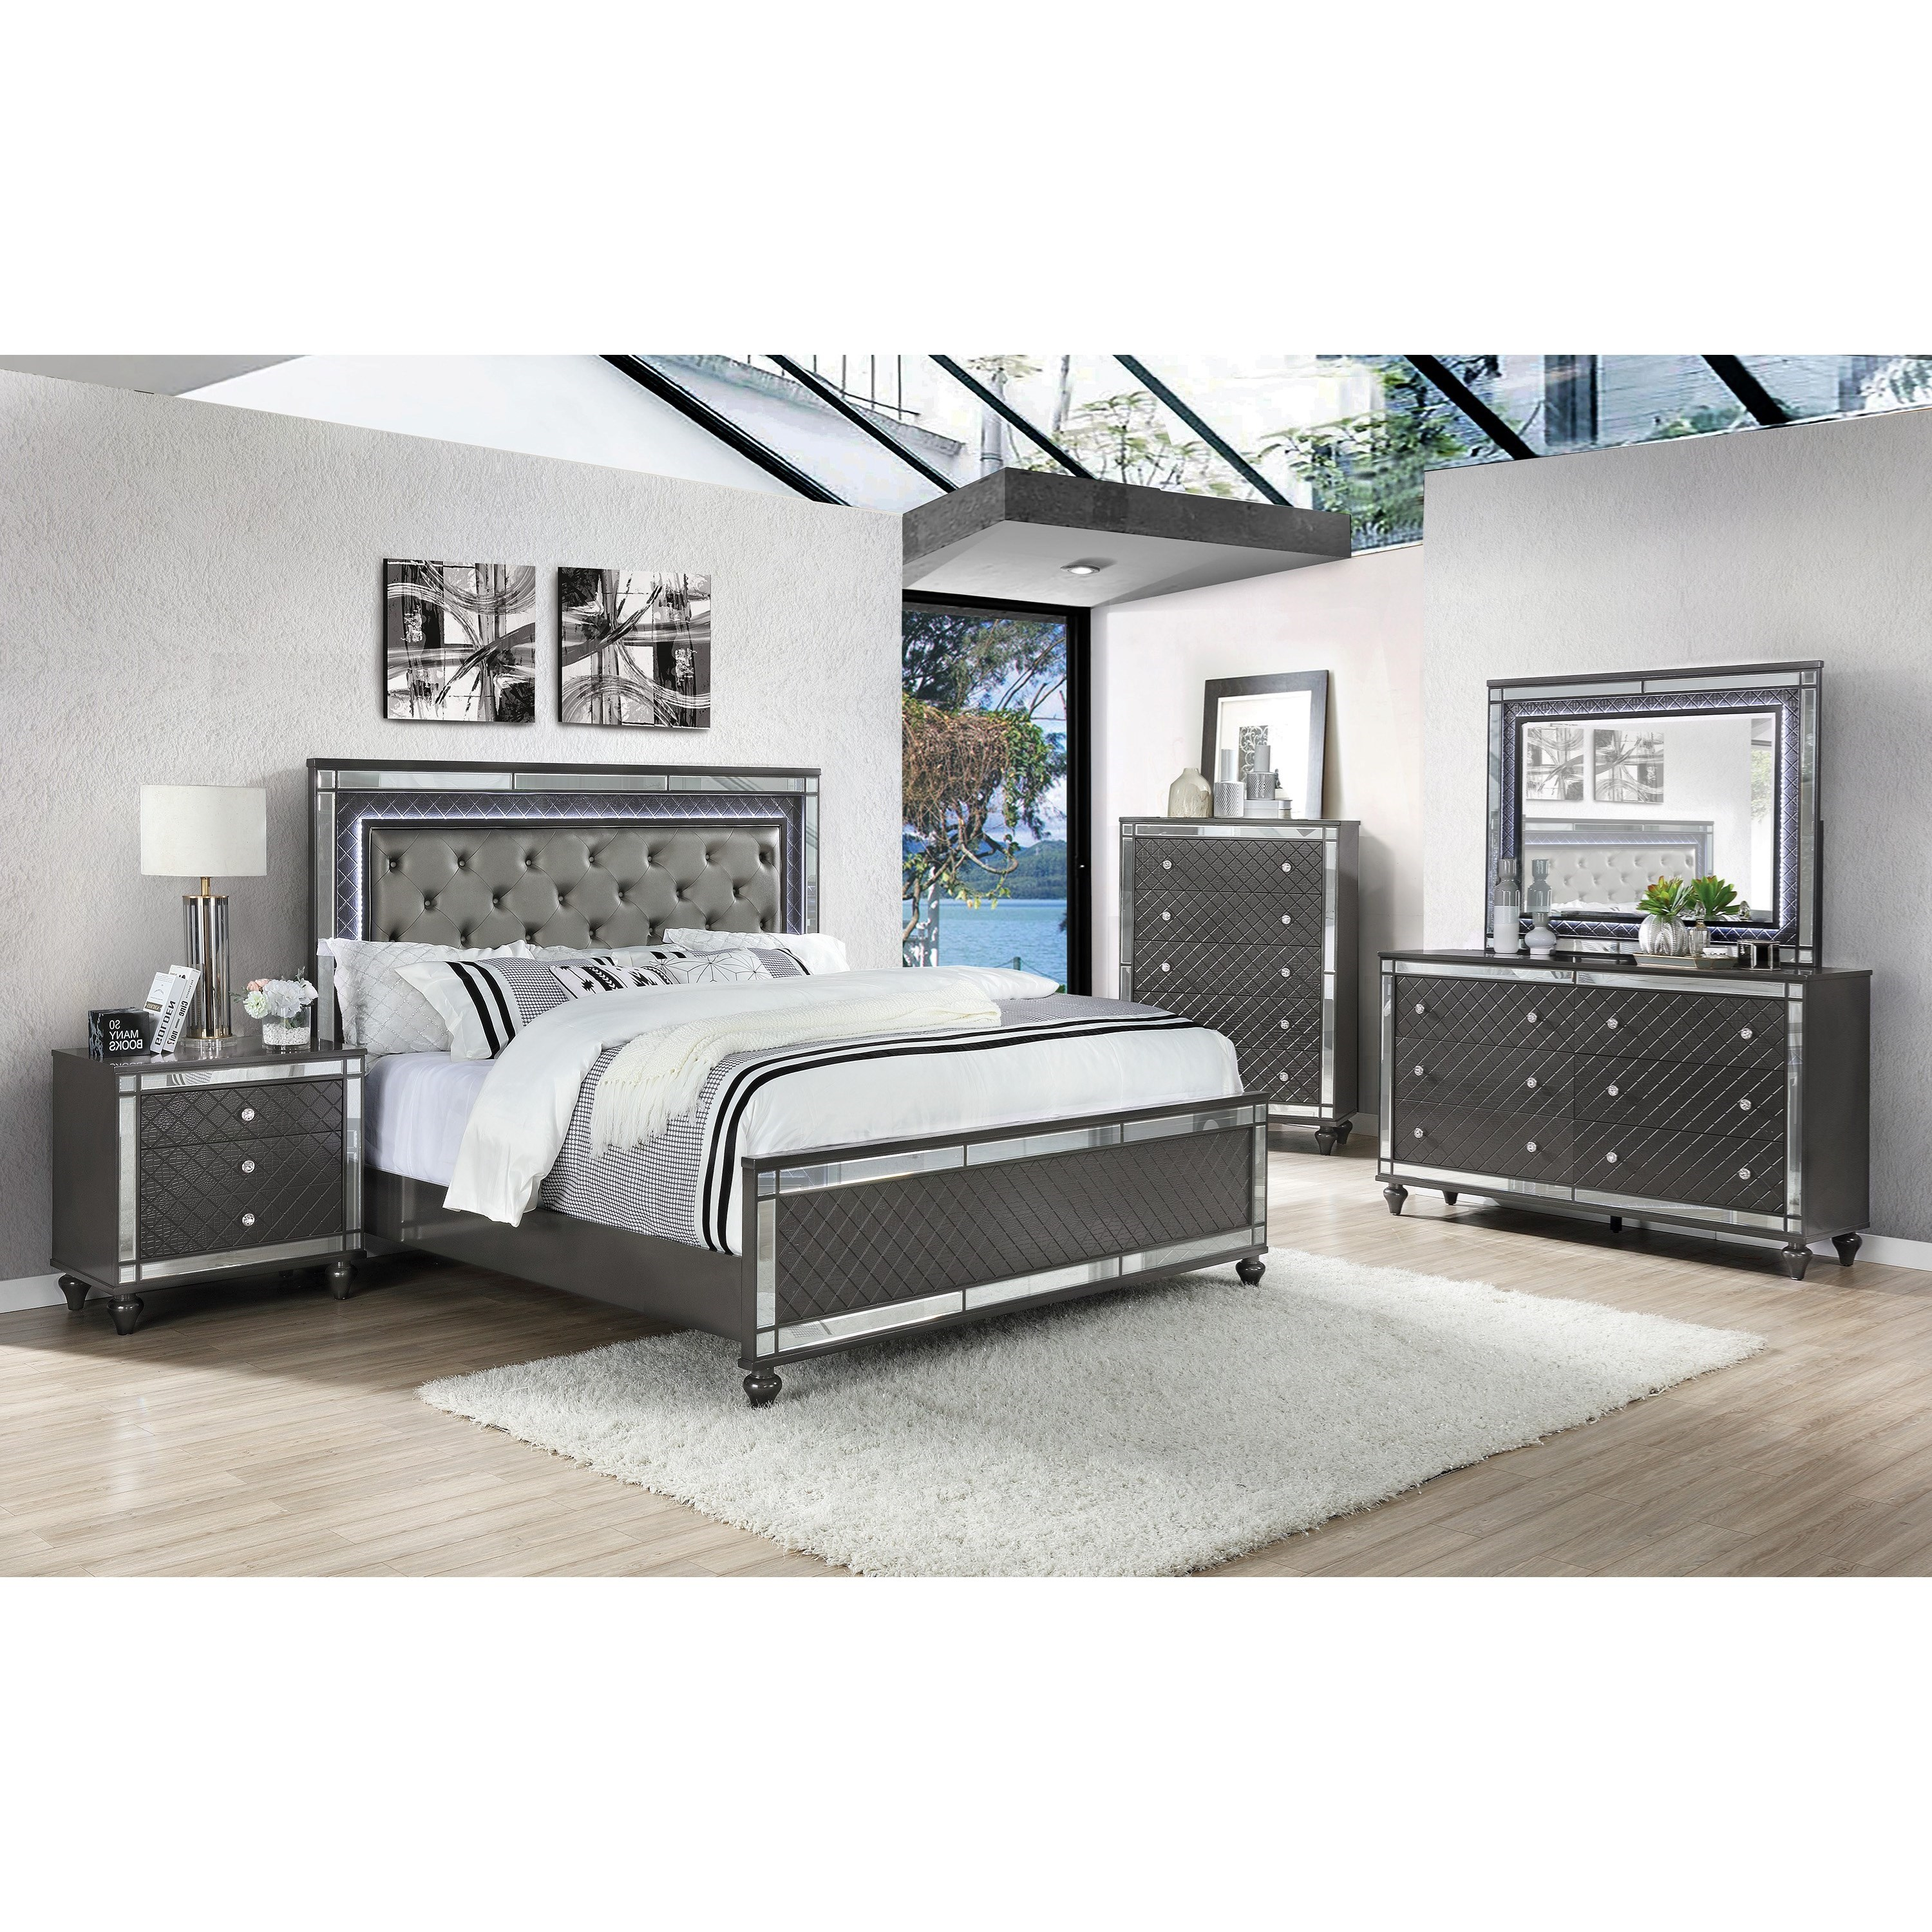 Refino King Bedroom Group by Crown Mark at Northeast Factory Direct